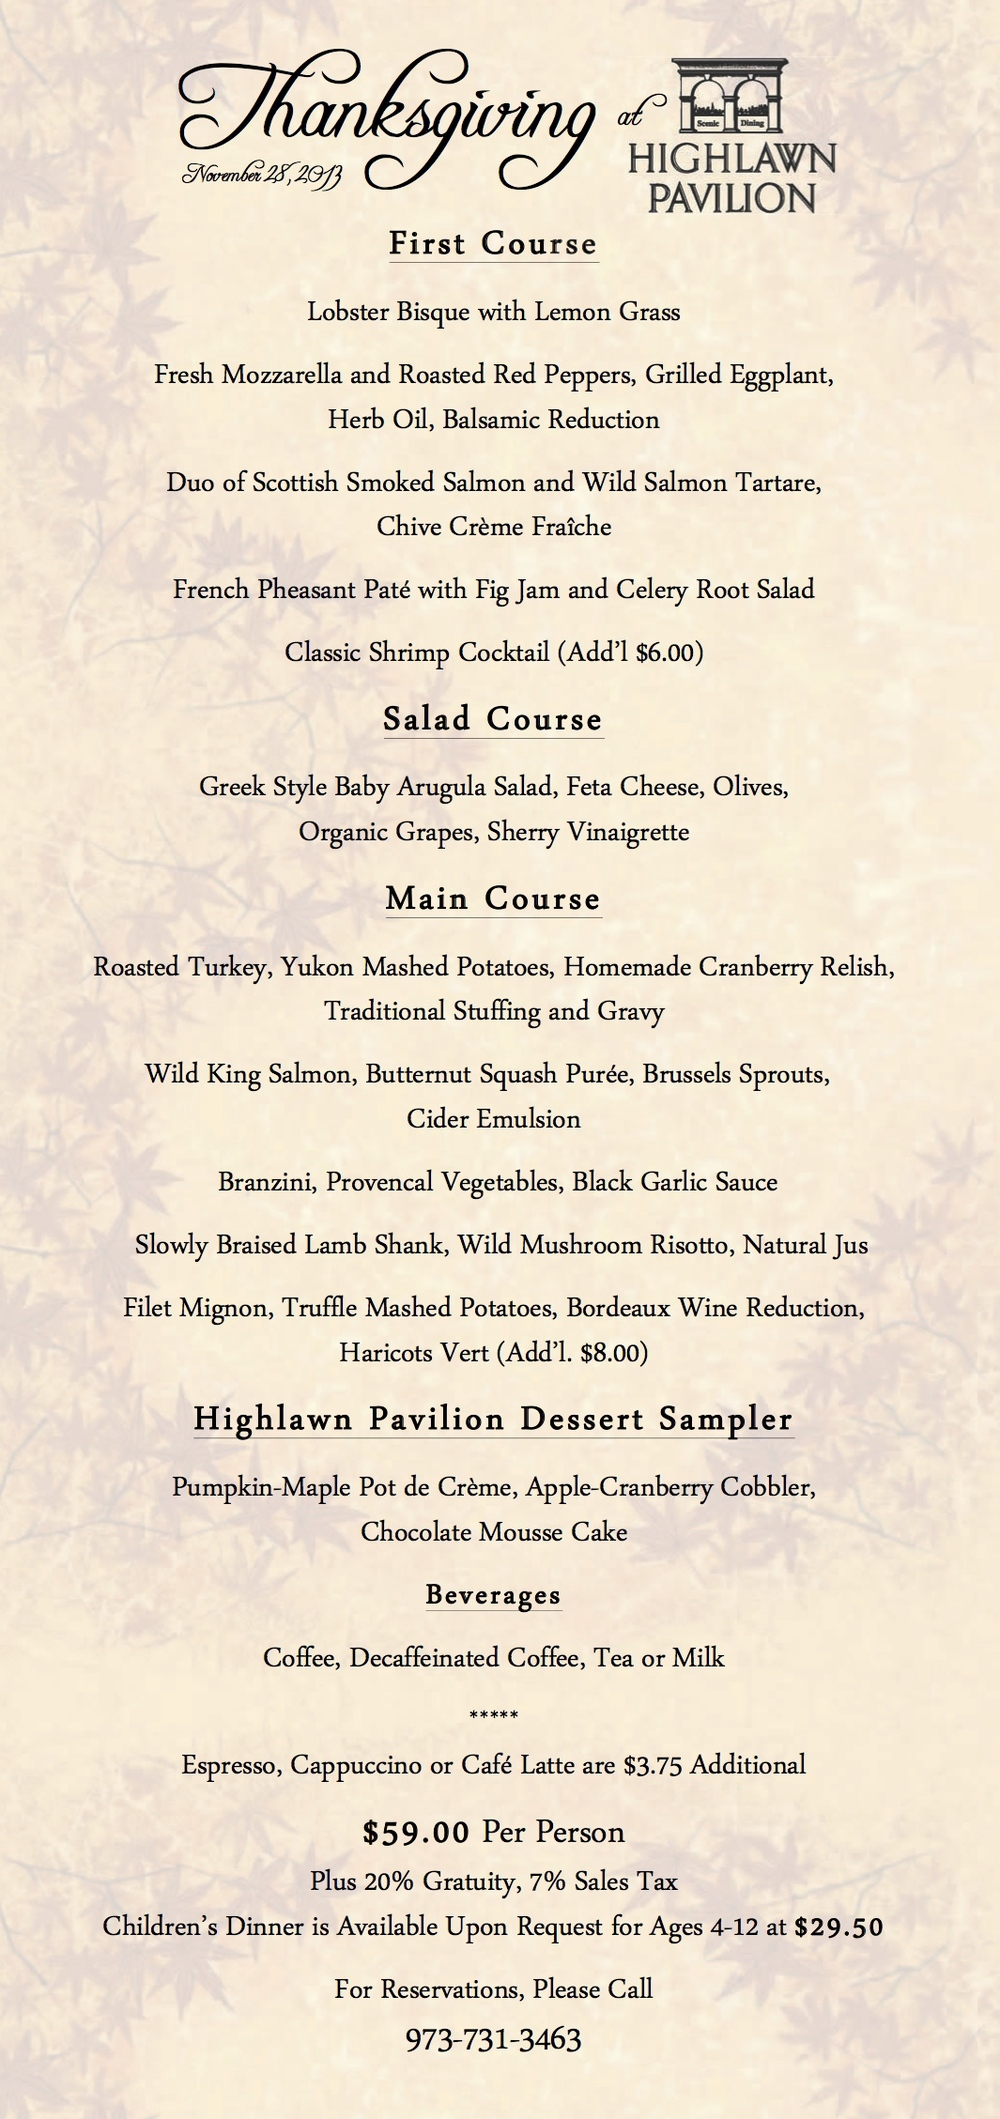 Highlawn_Pavilion_Thanksgiving_Menu_2013 copy.jpg